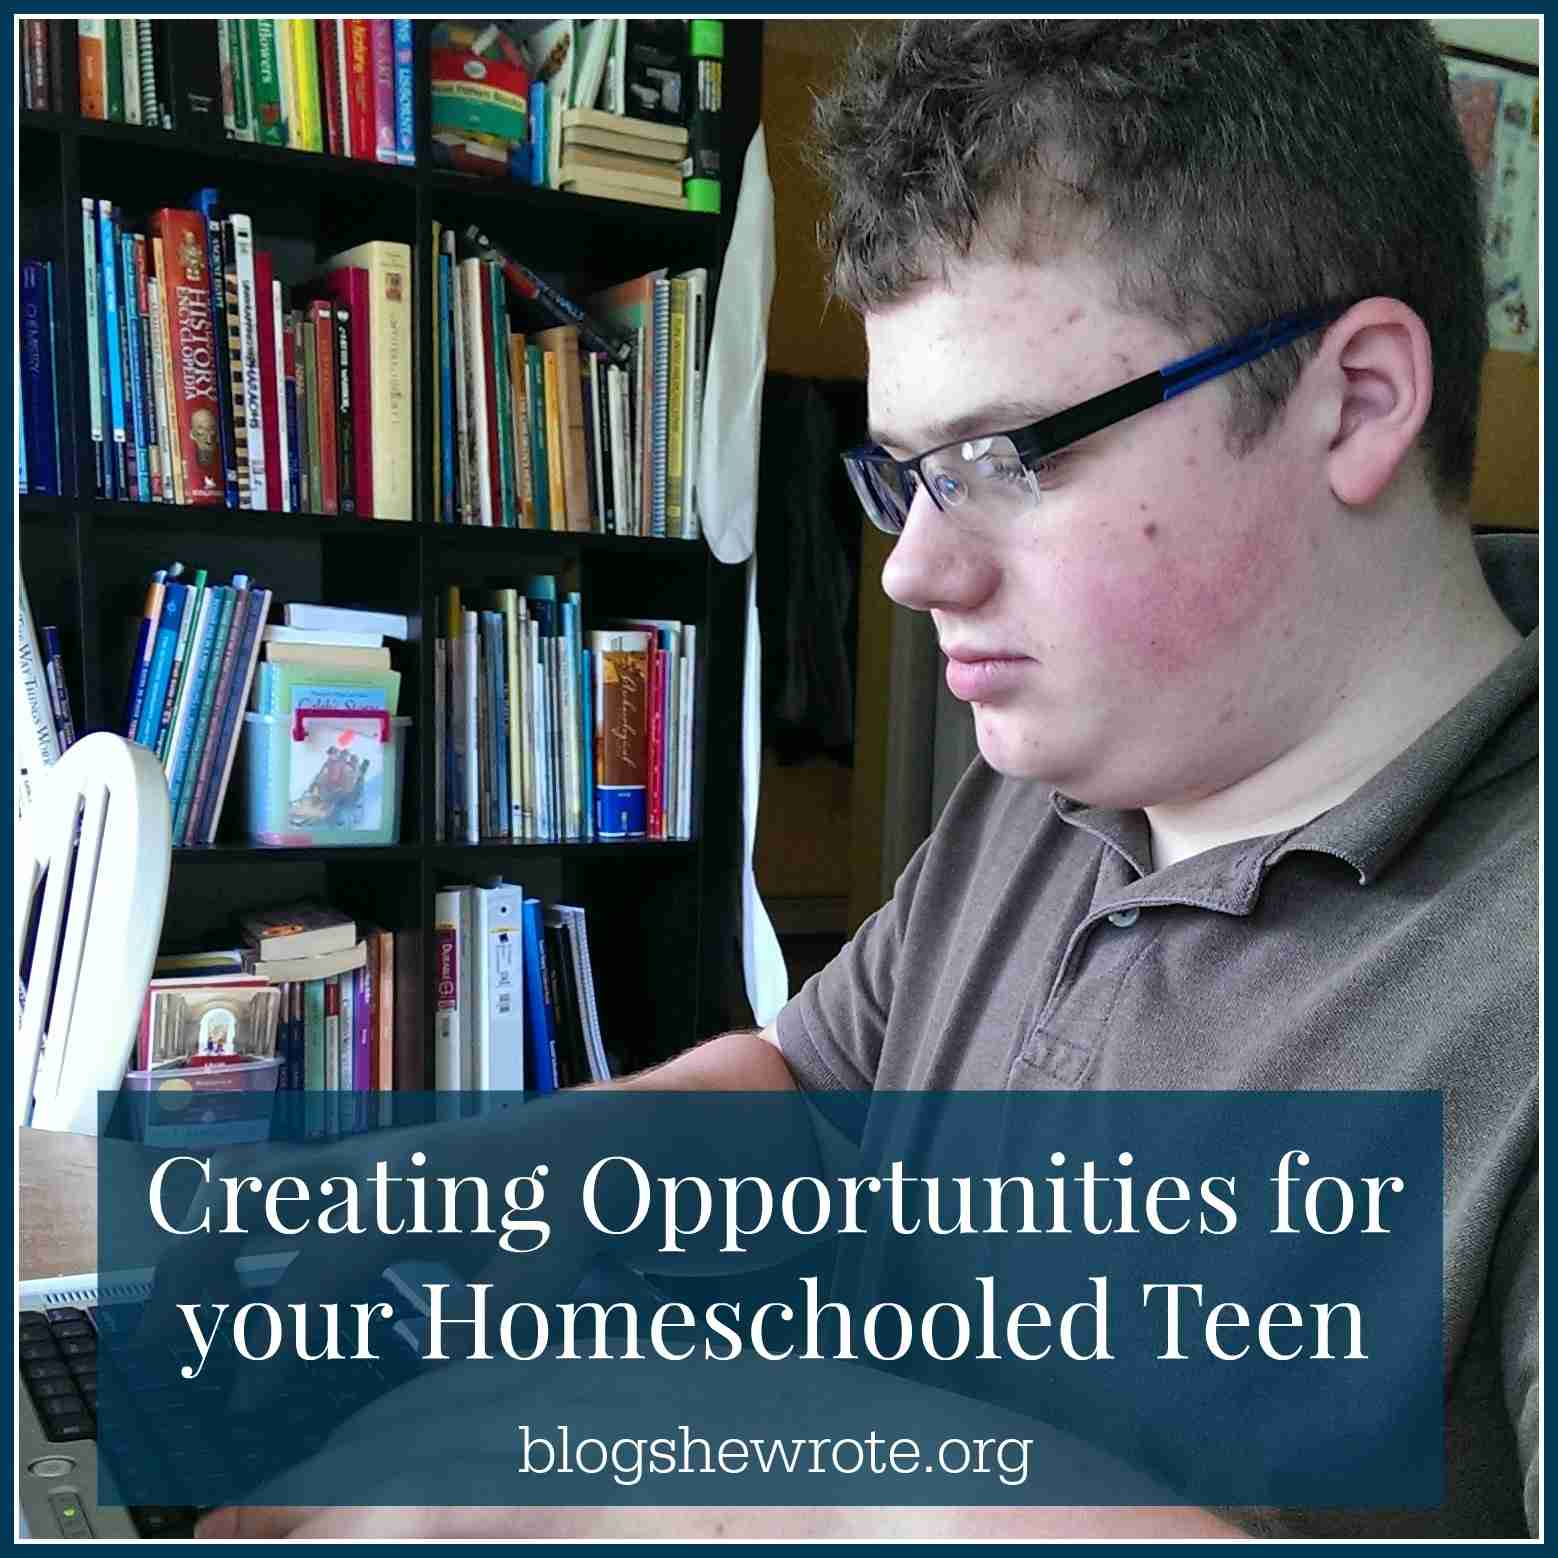 creating opportunities for your homeschooled teen blog she wrote